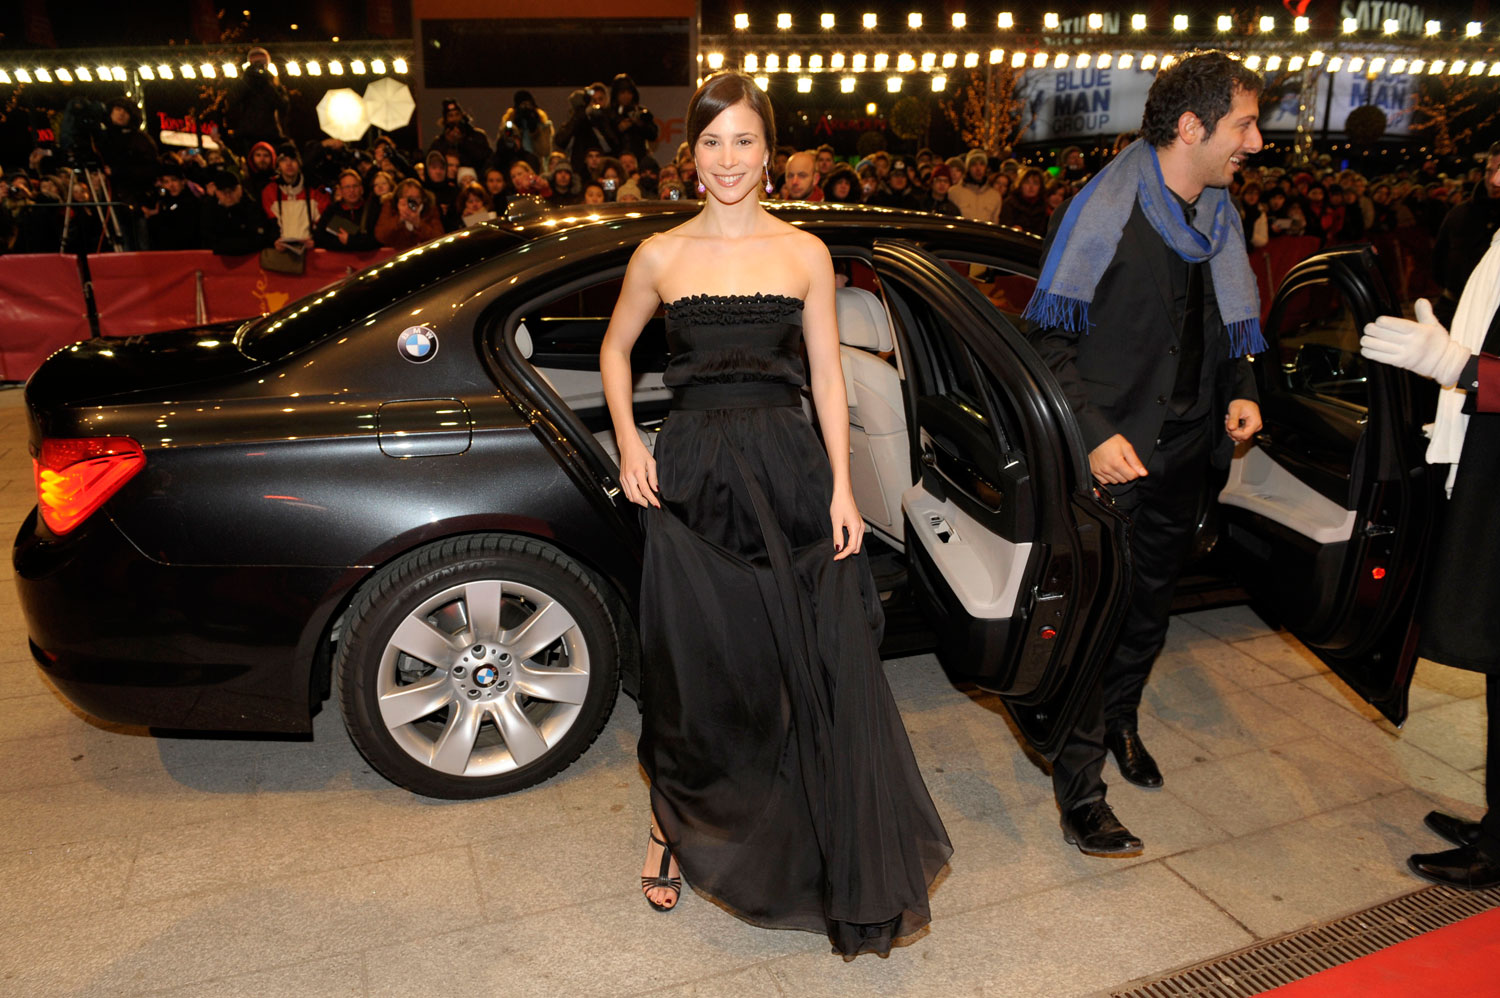 photo of Aylin Tezel BMW - car